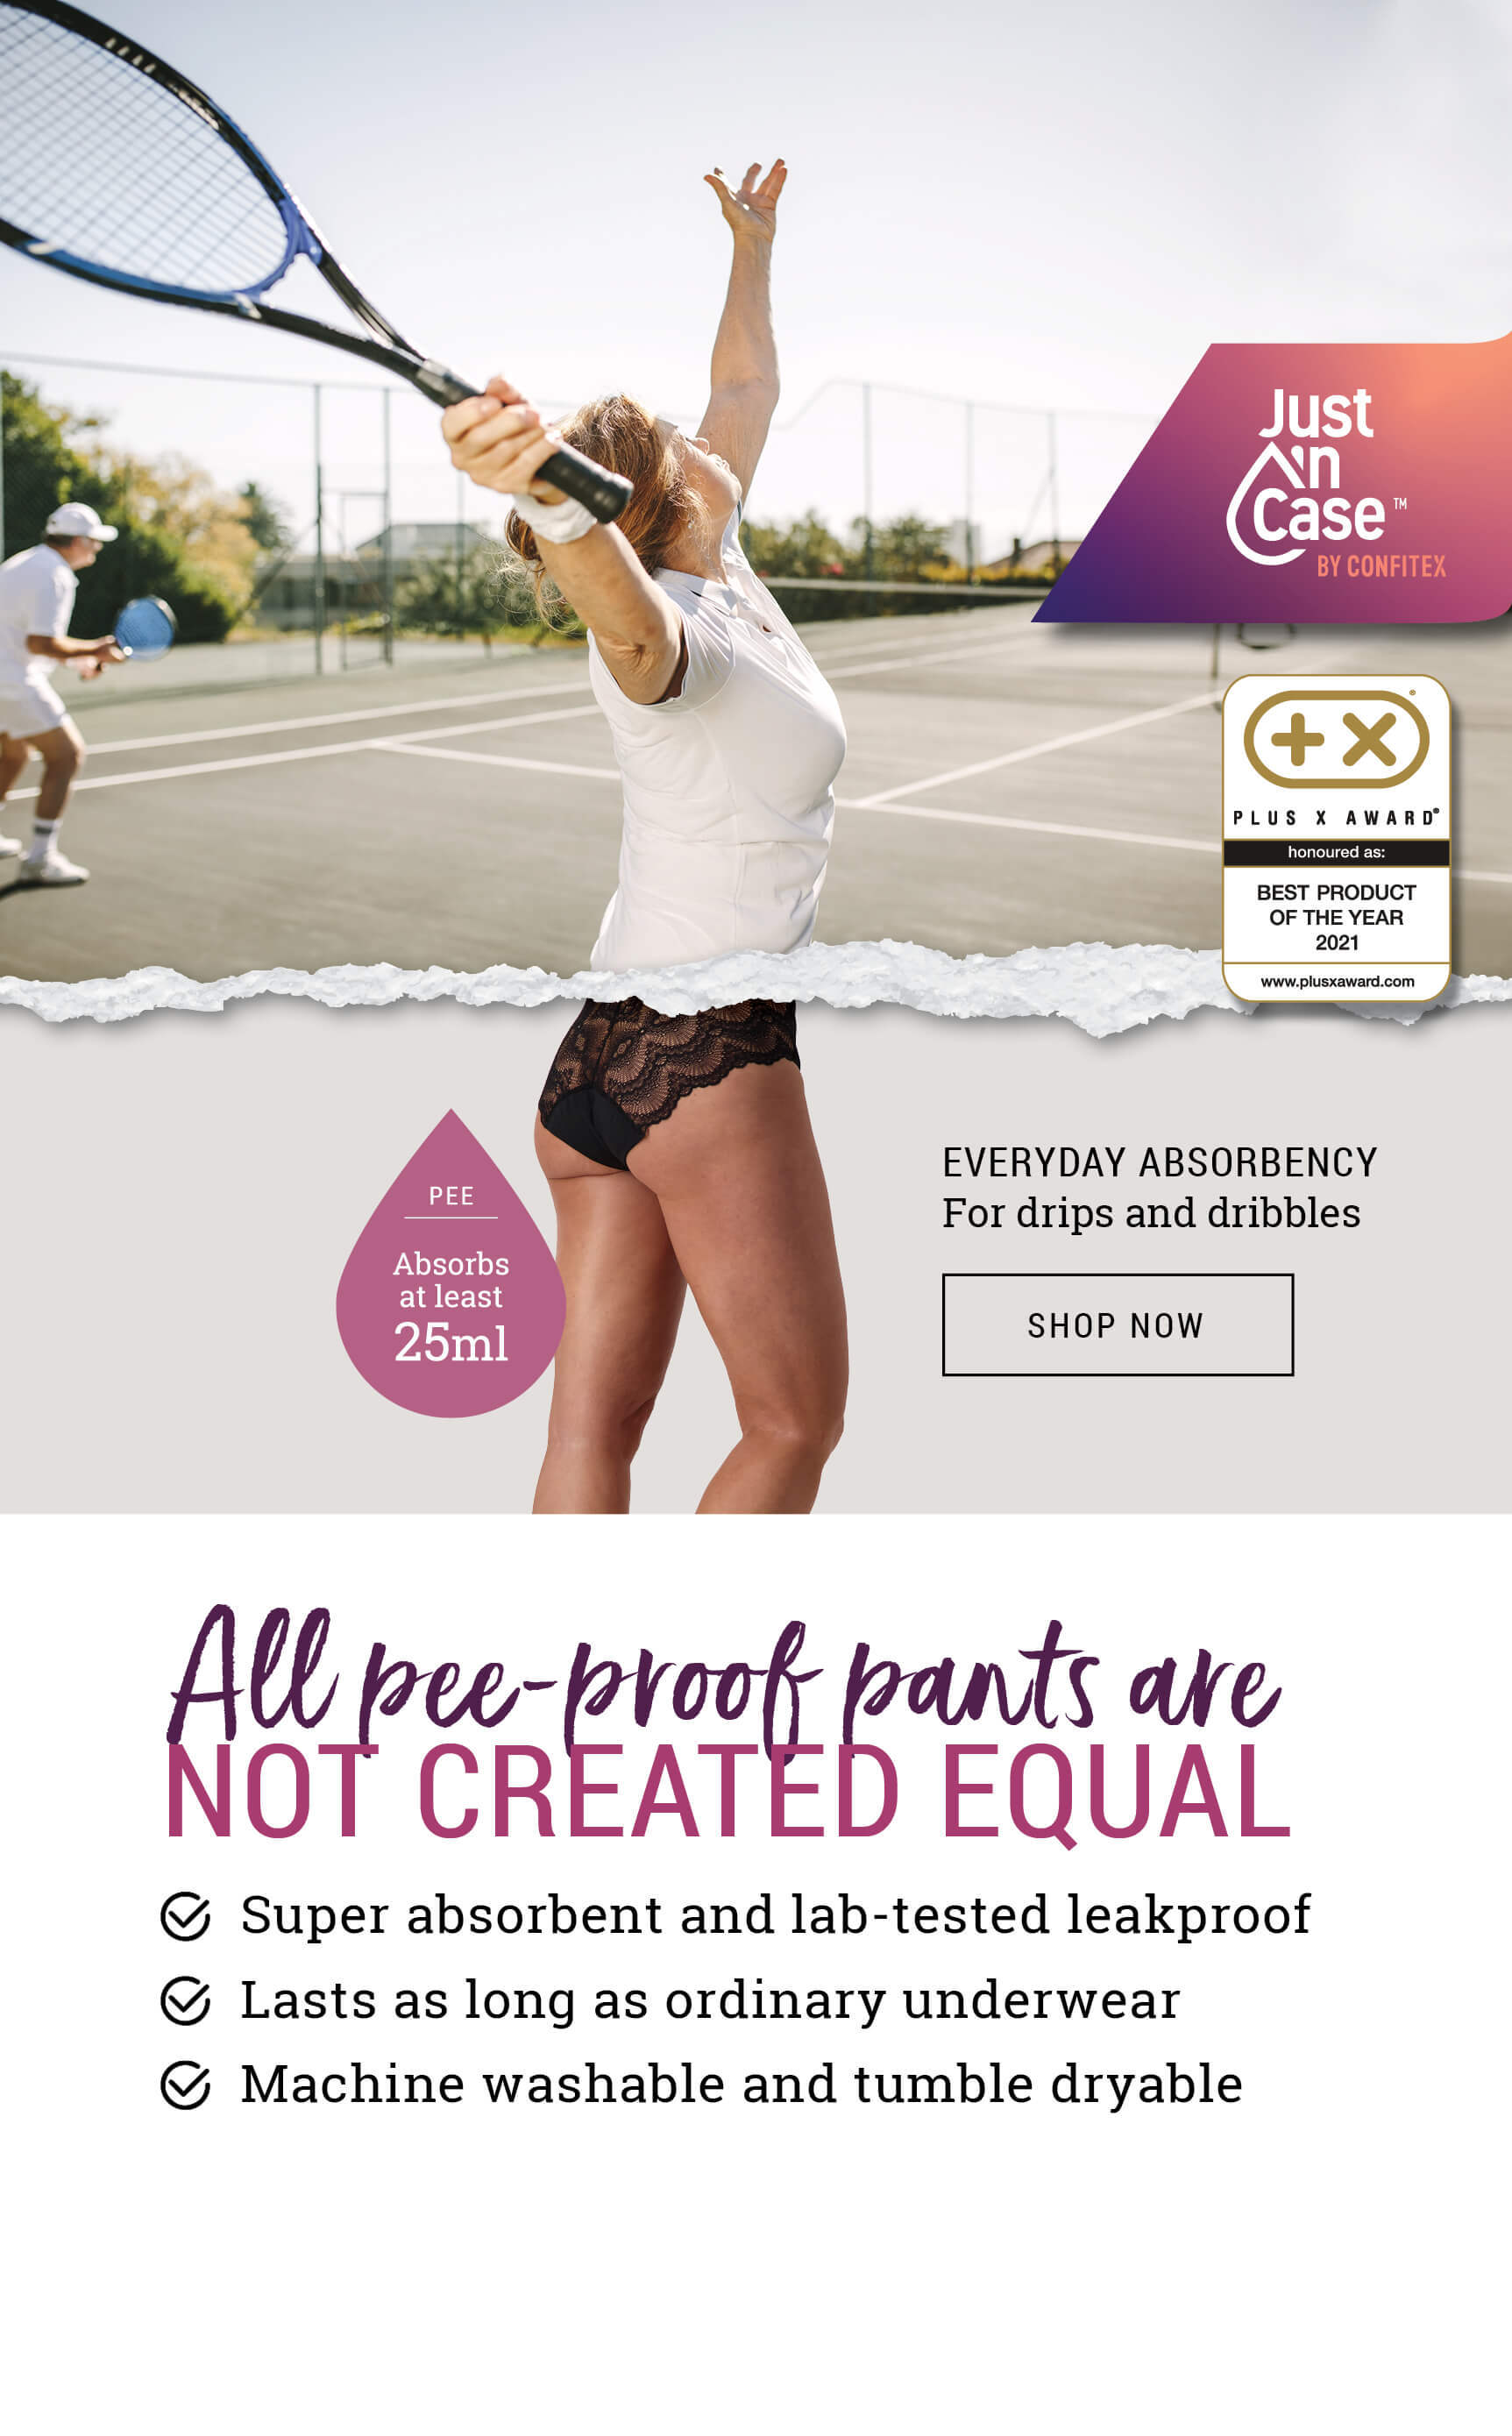 pee-proof underwear - features and benefits